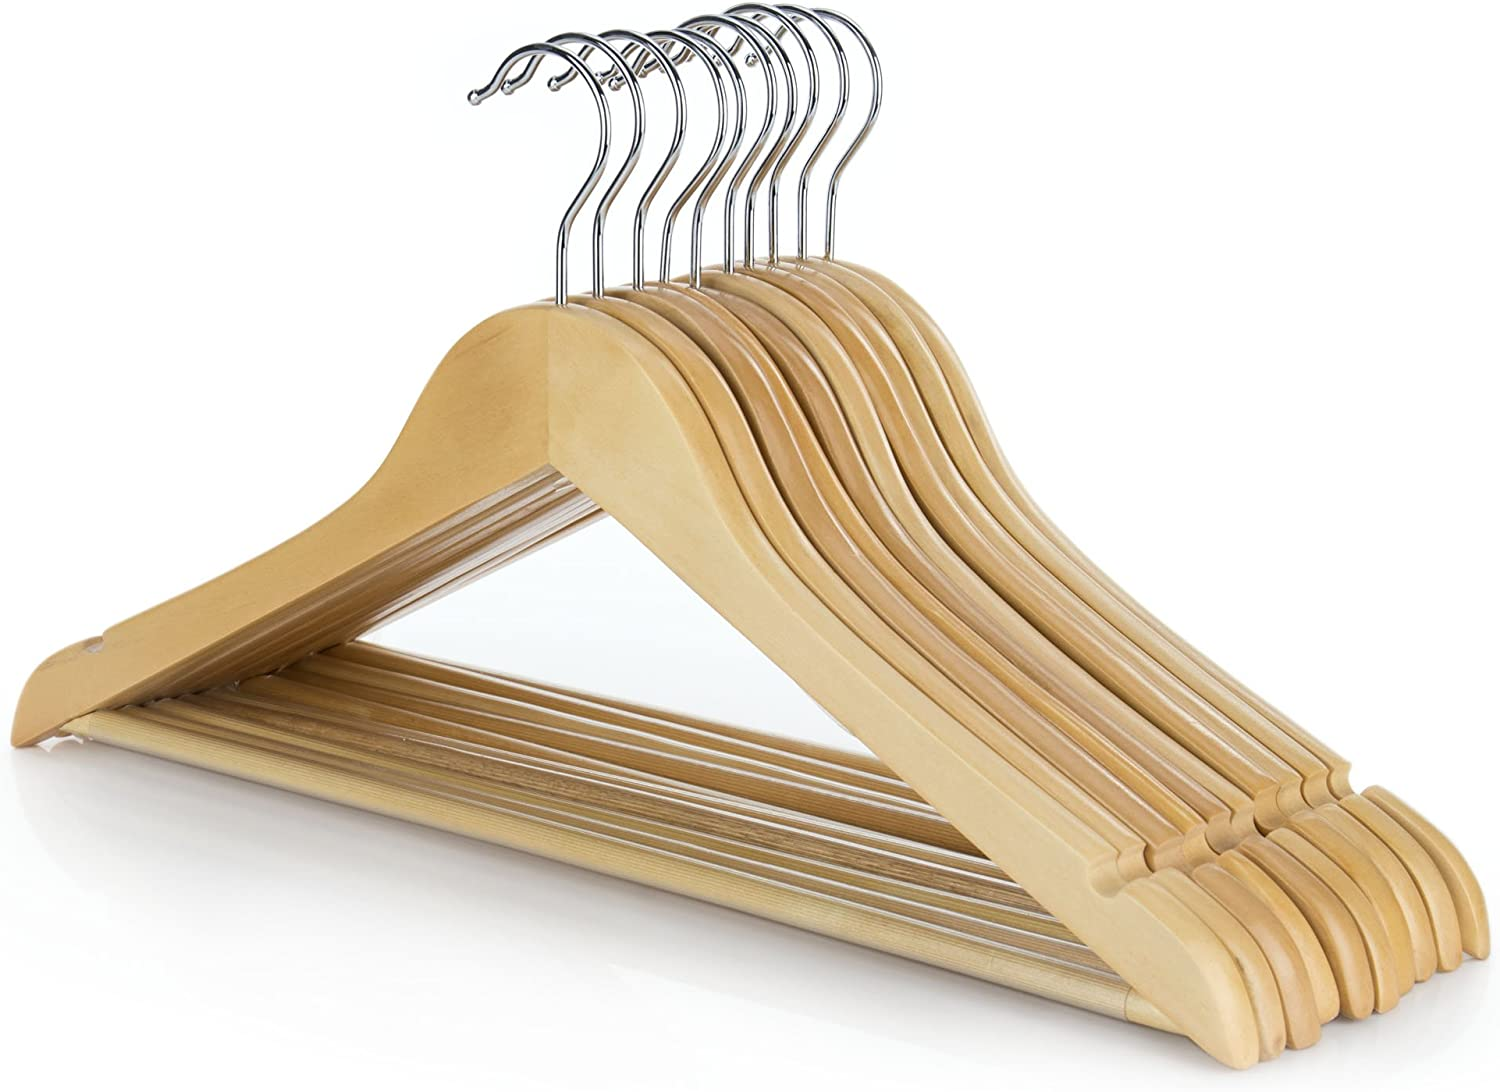 10 Wooden Coat Hangers Suit Garments Clothes Trouser Hanger Bar Notches Set Wood